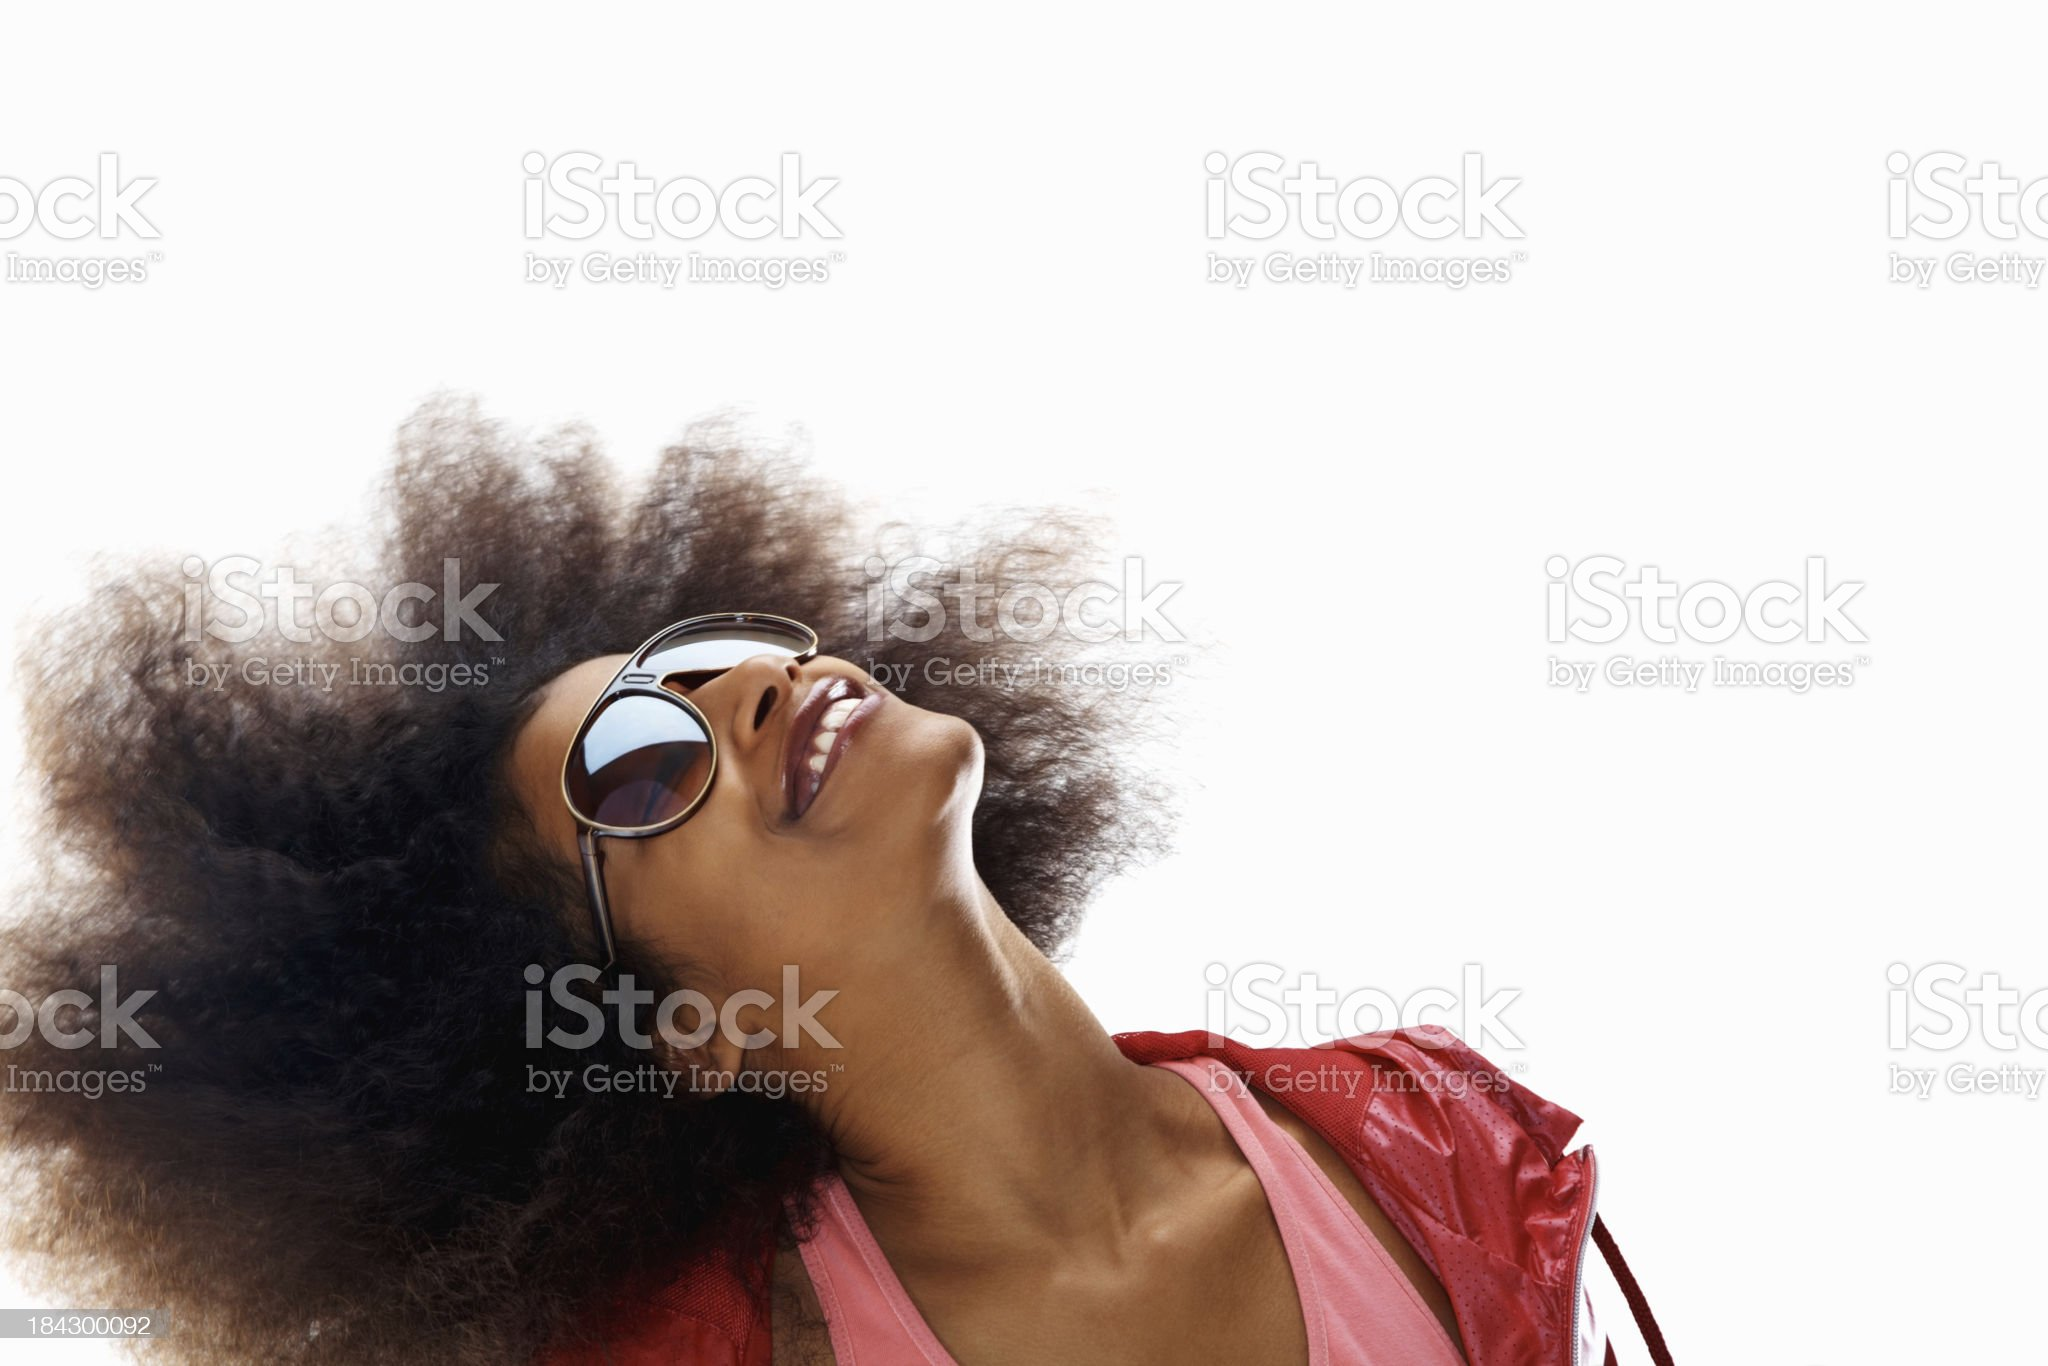 Woman swaying her hair on white background royalty-free stock photo